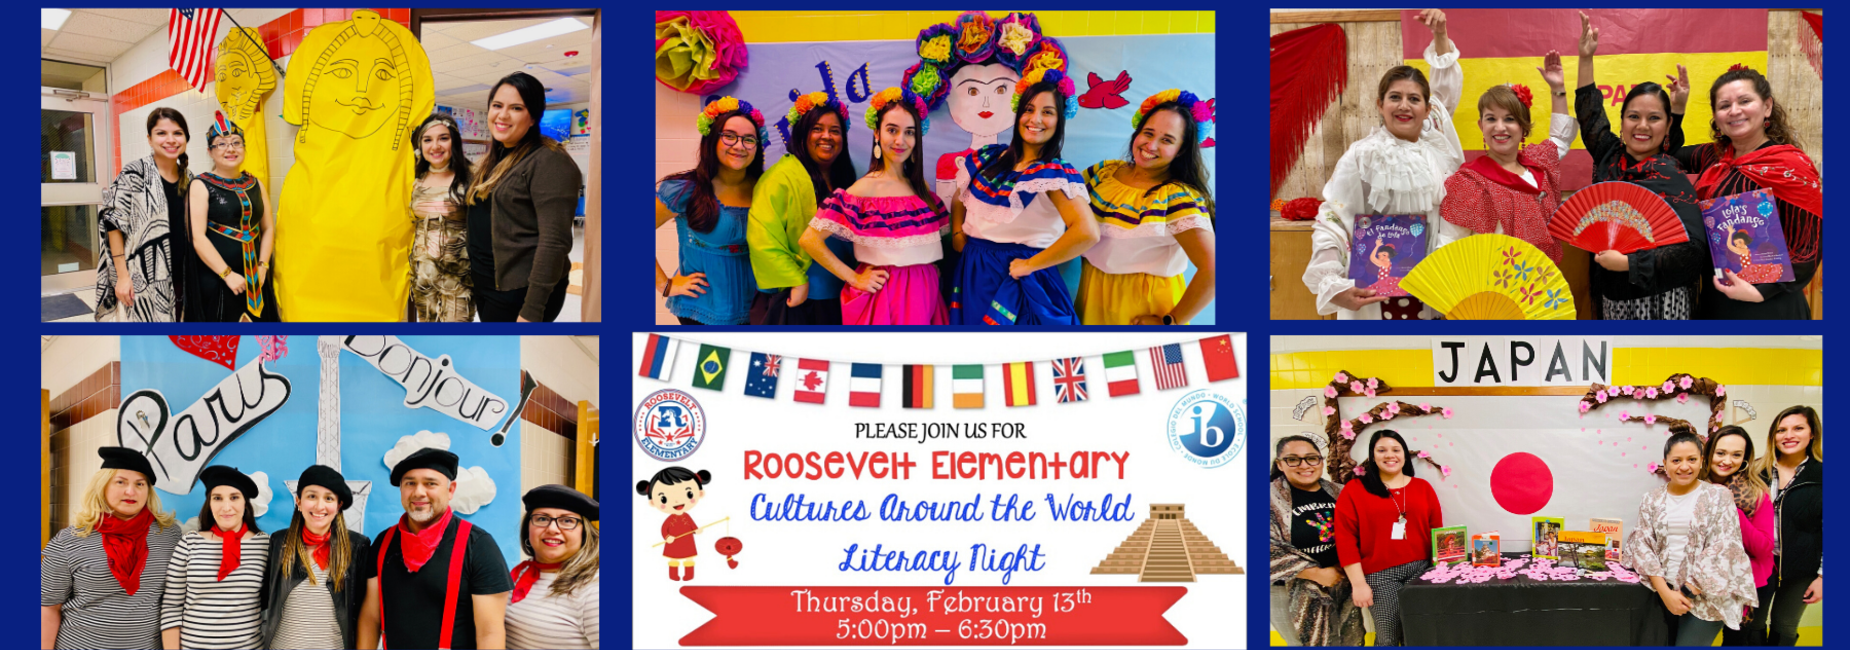 Cultures around the world literacy event